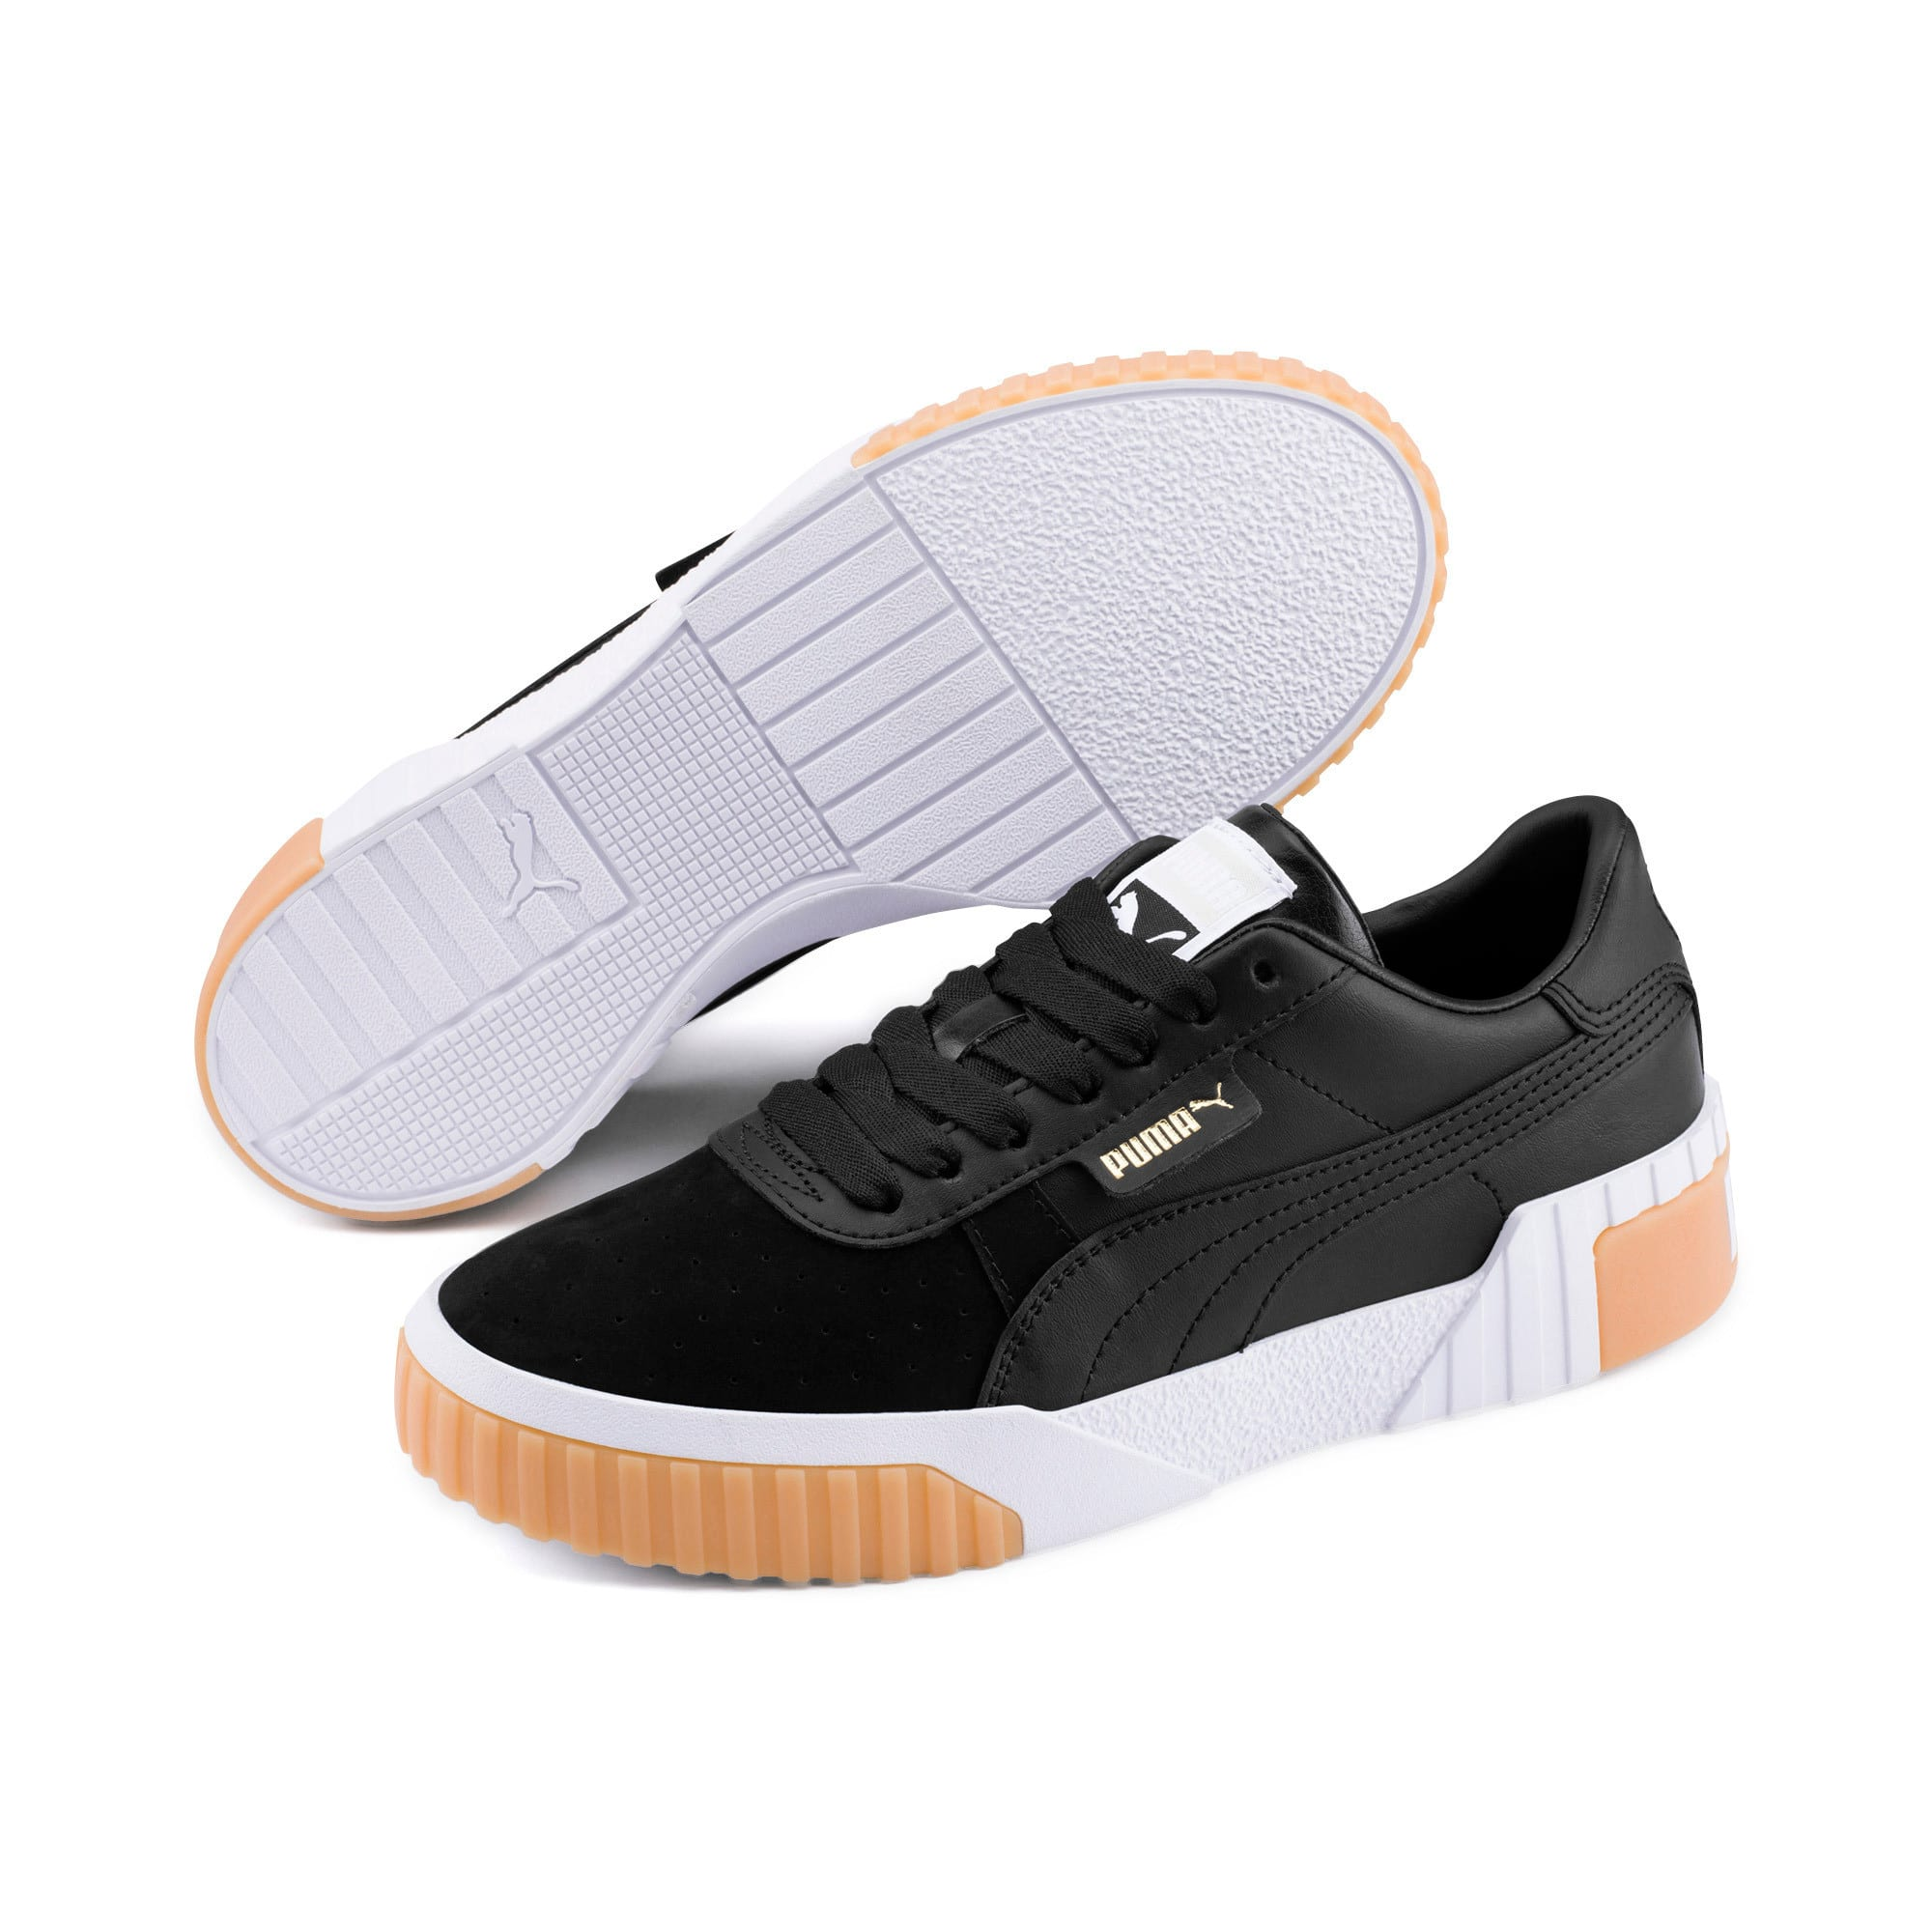 Thumbnail 2 of Cali Exotic Women's Trainers, Puma Black-Puma Black, medium